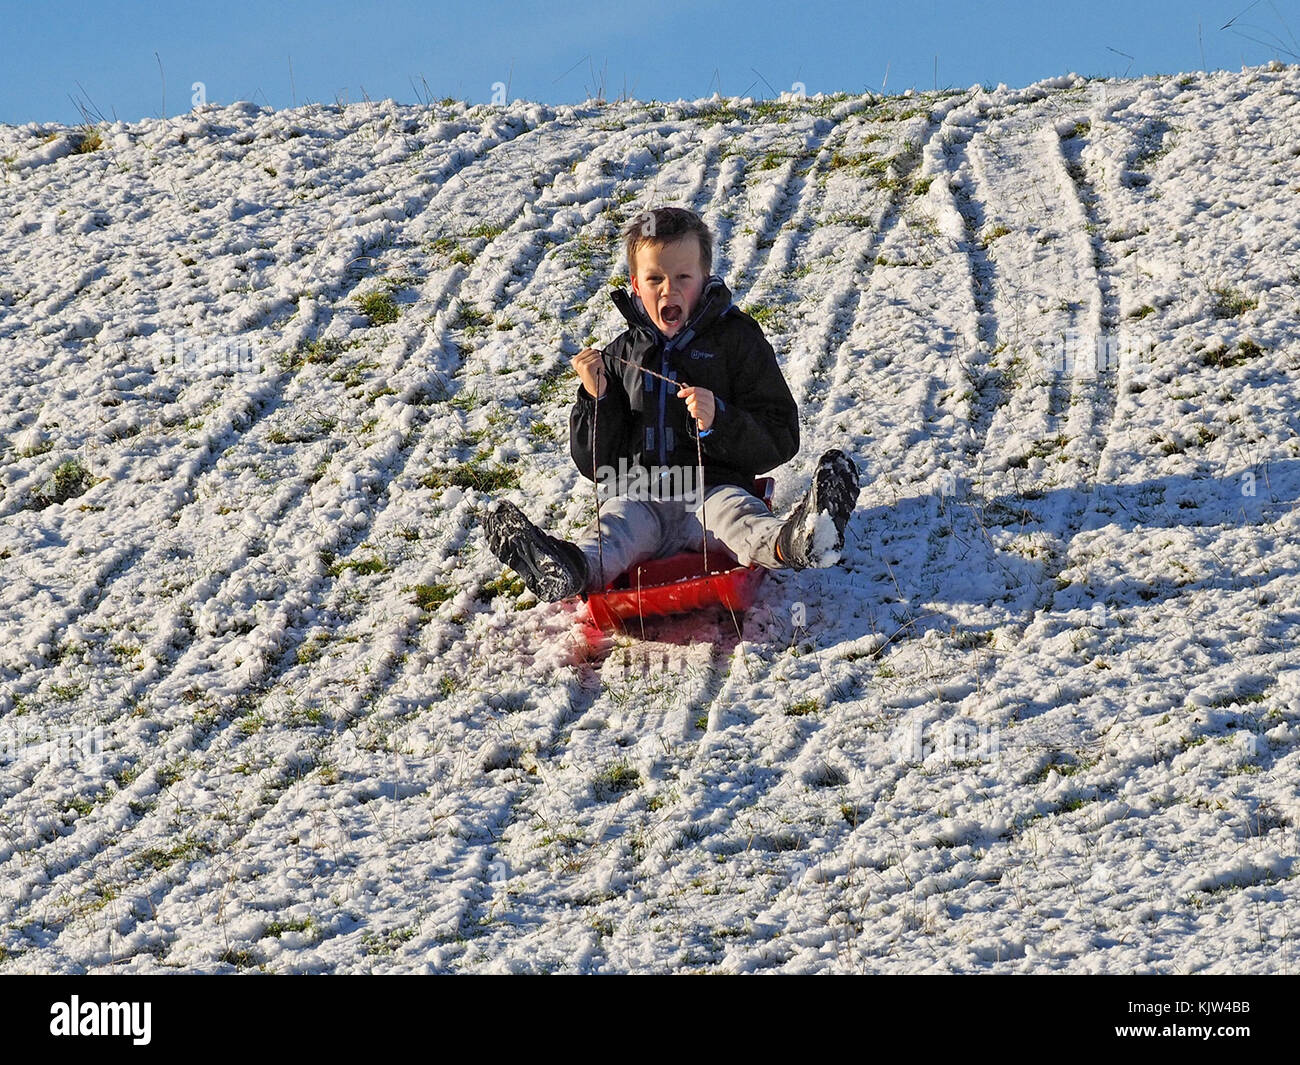 Cumbria, UK. 25th November, 2017. Sledging in Cumbria after early snowfall Credit: Steve Holroyd/Alamy Live News - Stock Image